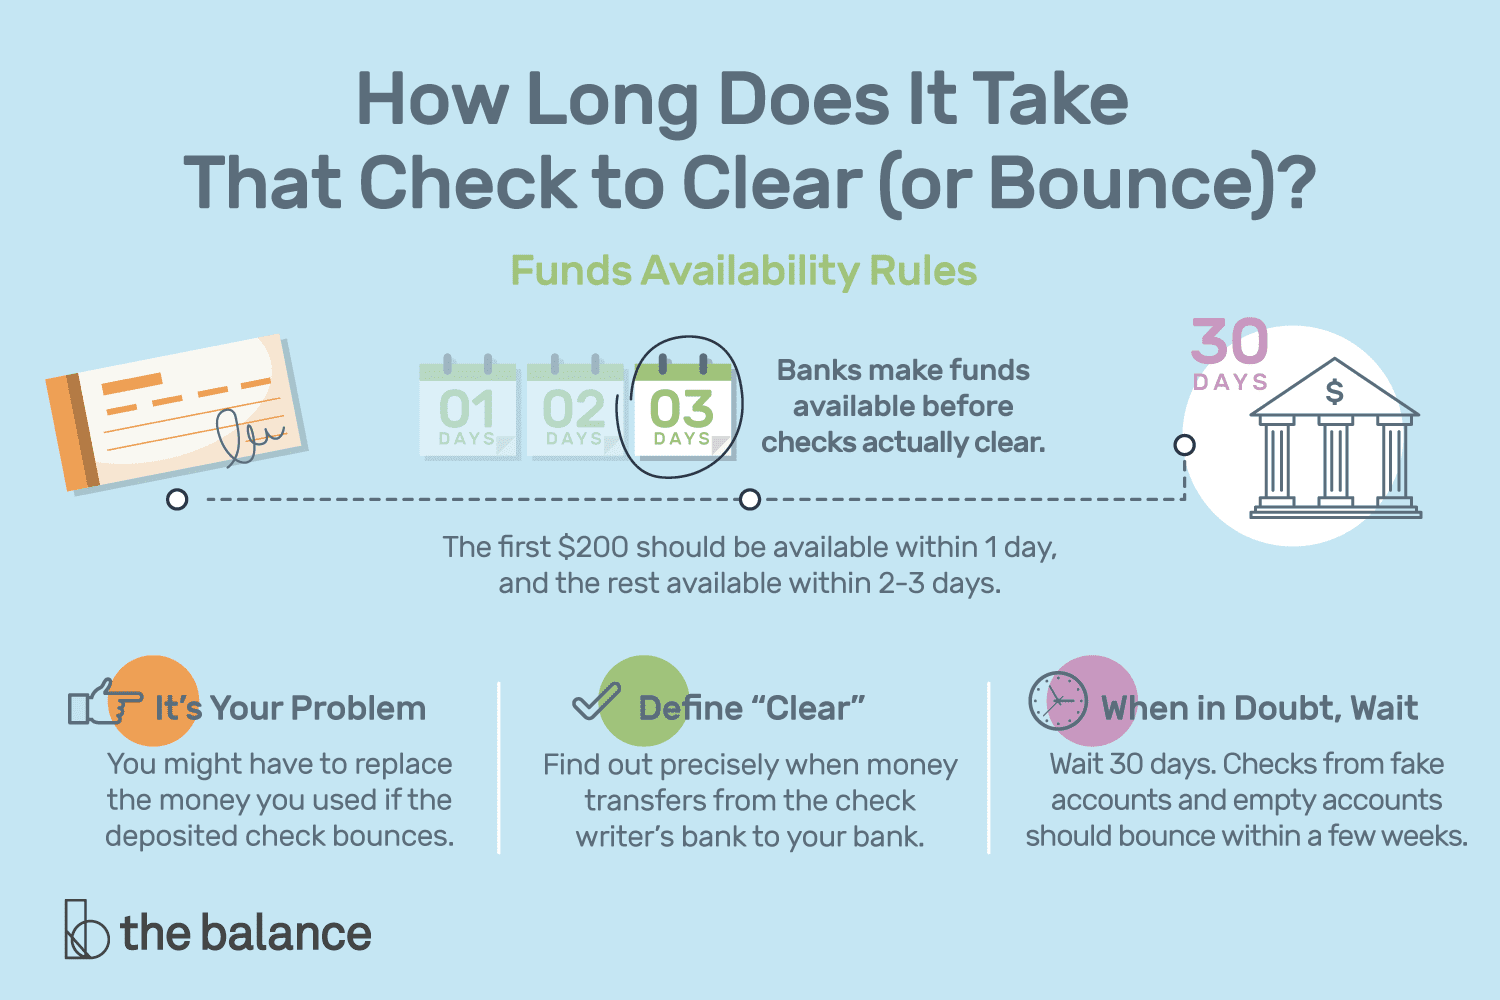 How Long Does it Take for a Check to Clear?